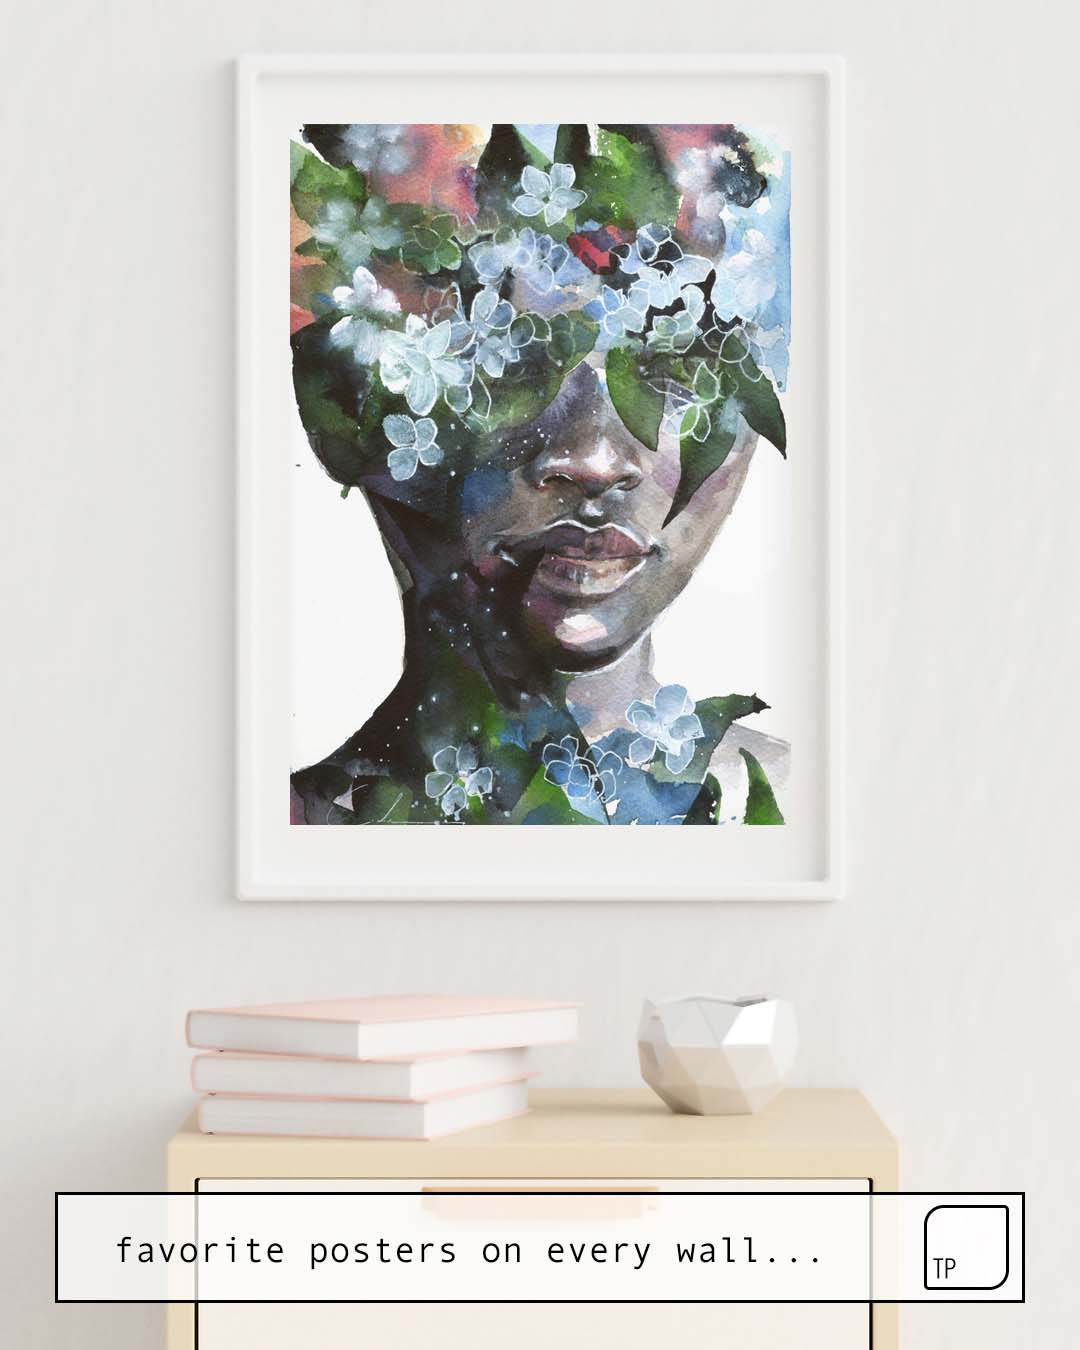 The photo shows an example of furnishing with the motif GARDEN II by Agnes Cecile as mural